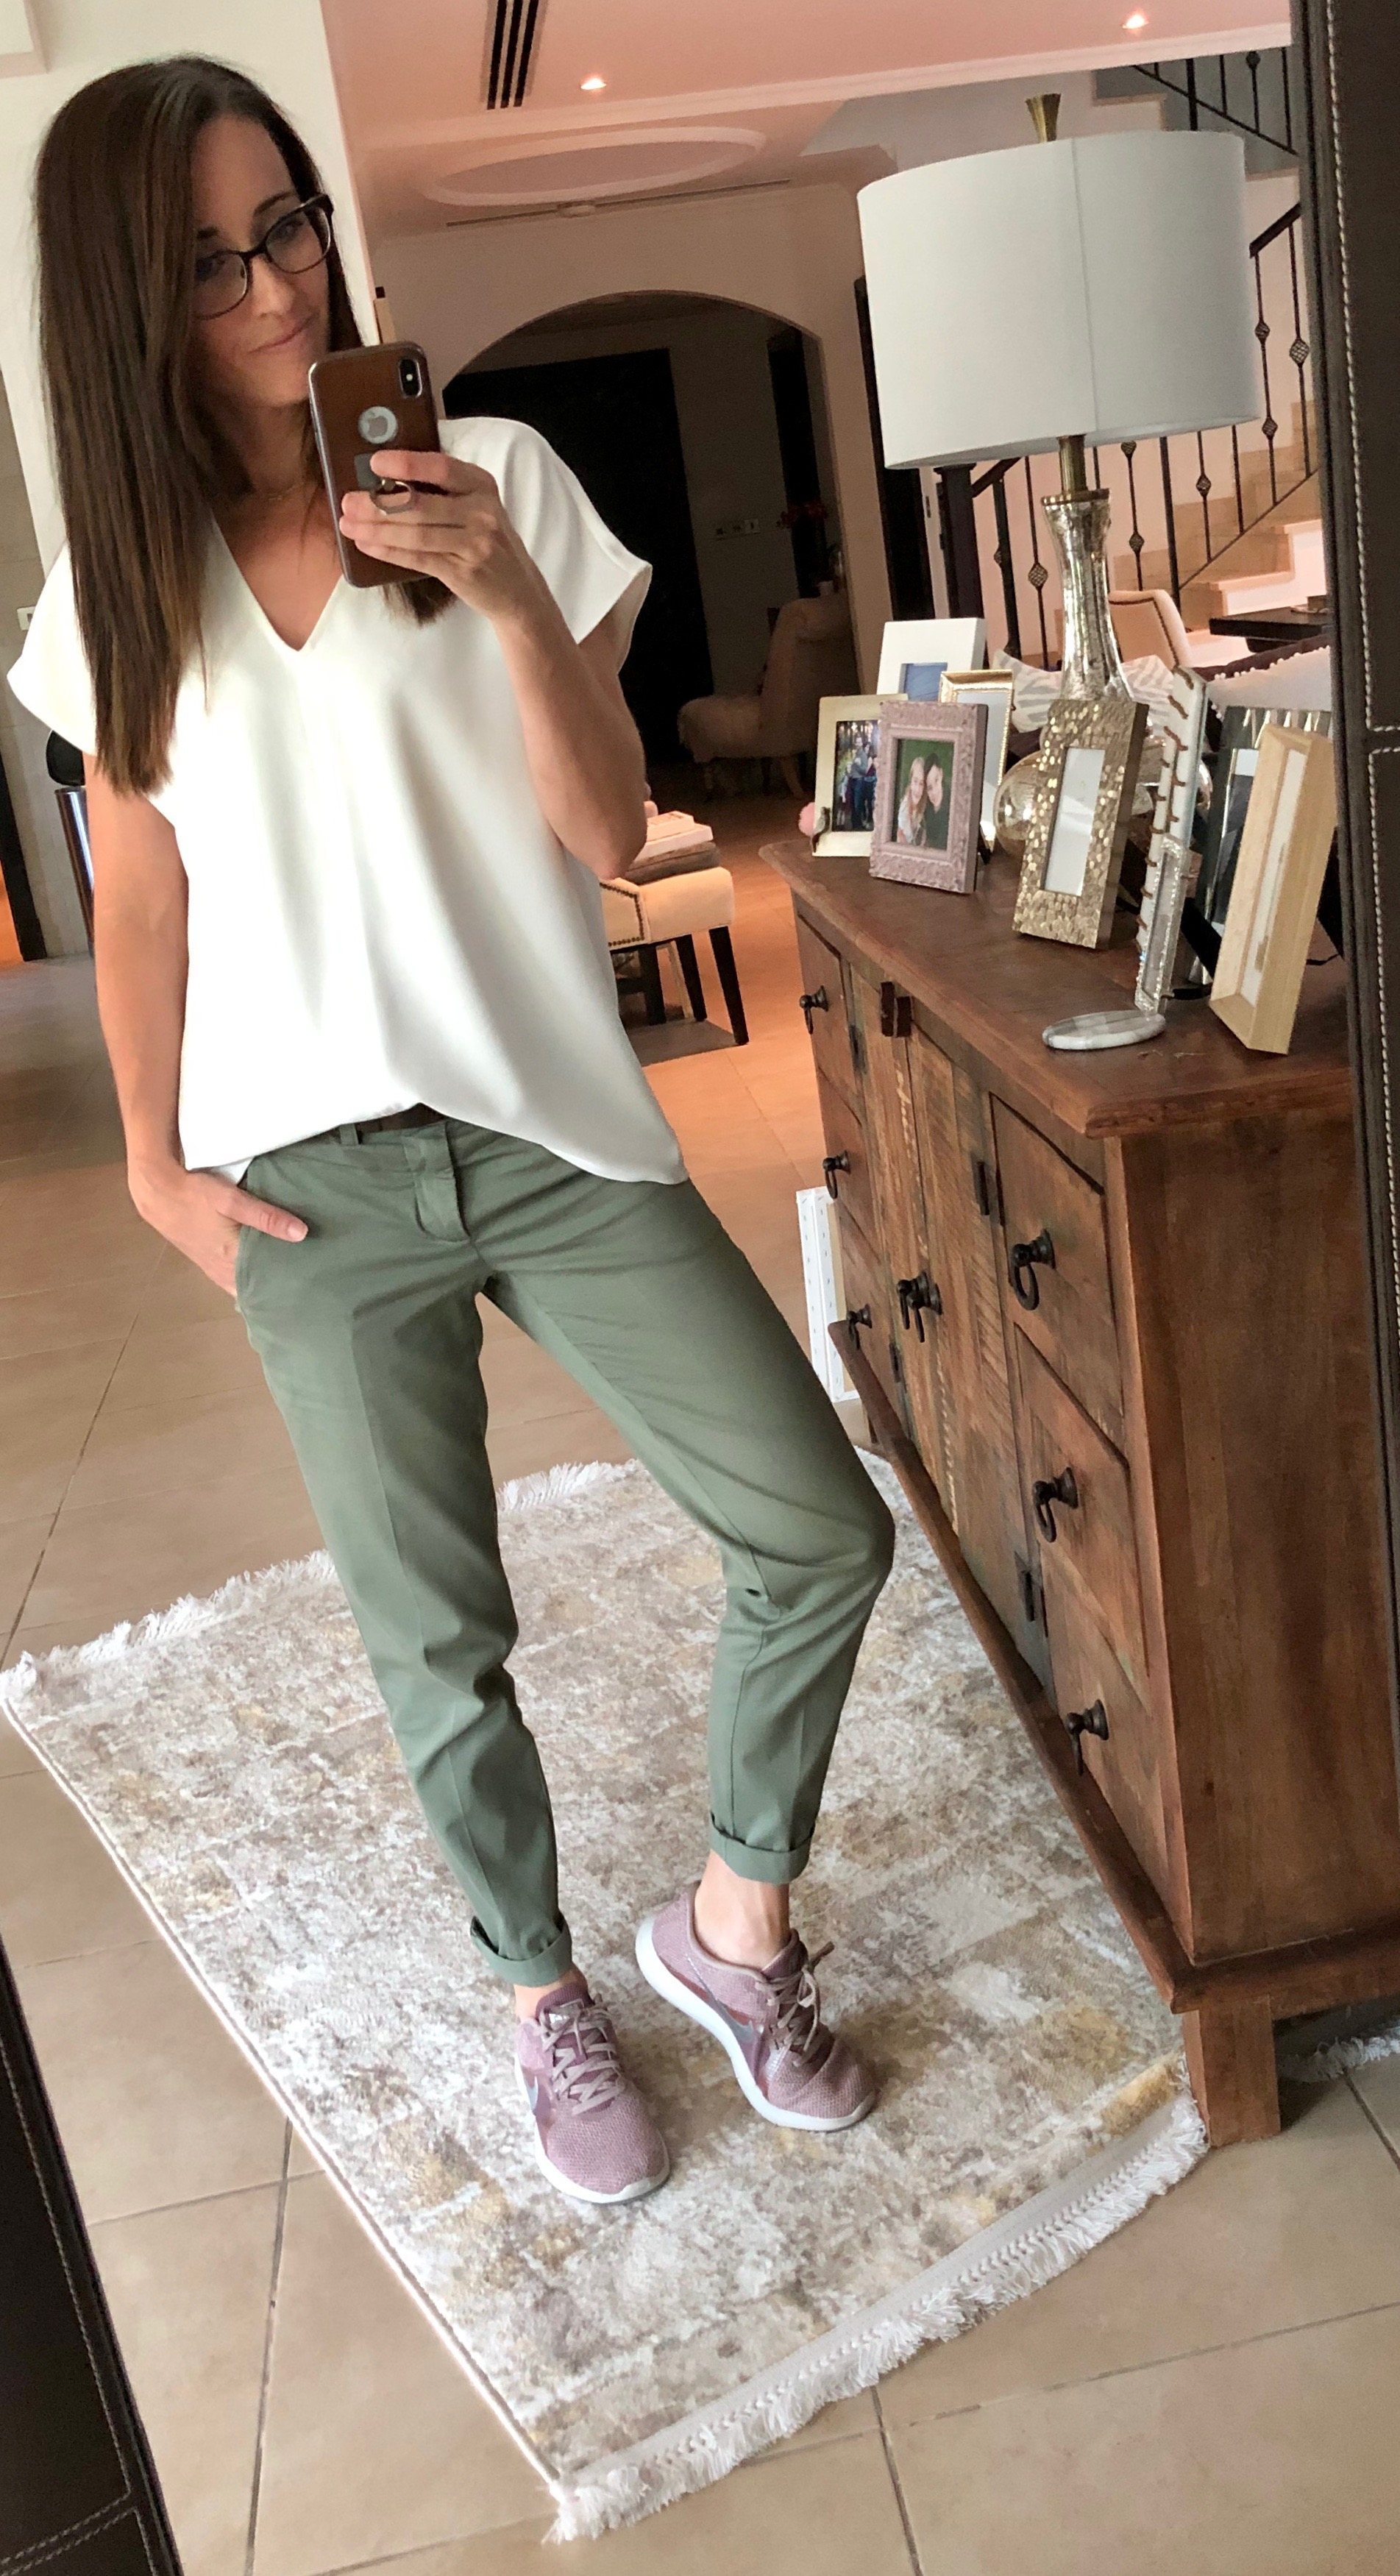 neutrals, white top, khaki pants, dressed up, dressed down, casual, everyday style, method39, style advisor, my style, wear it, as seen on me, how to get dressed, versatile wardrobe, look your best